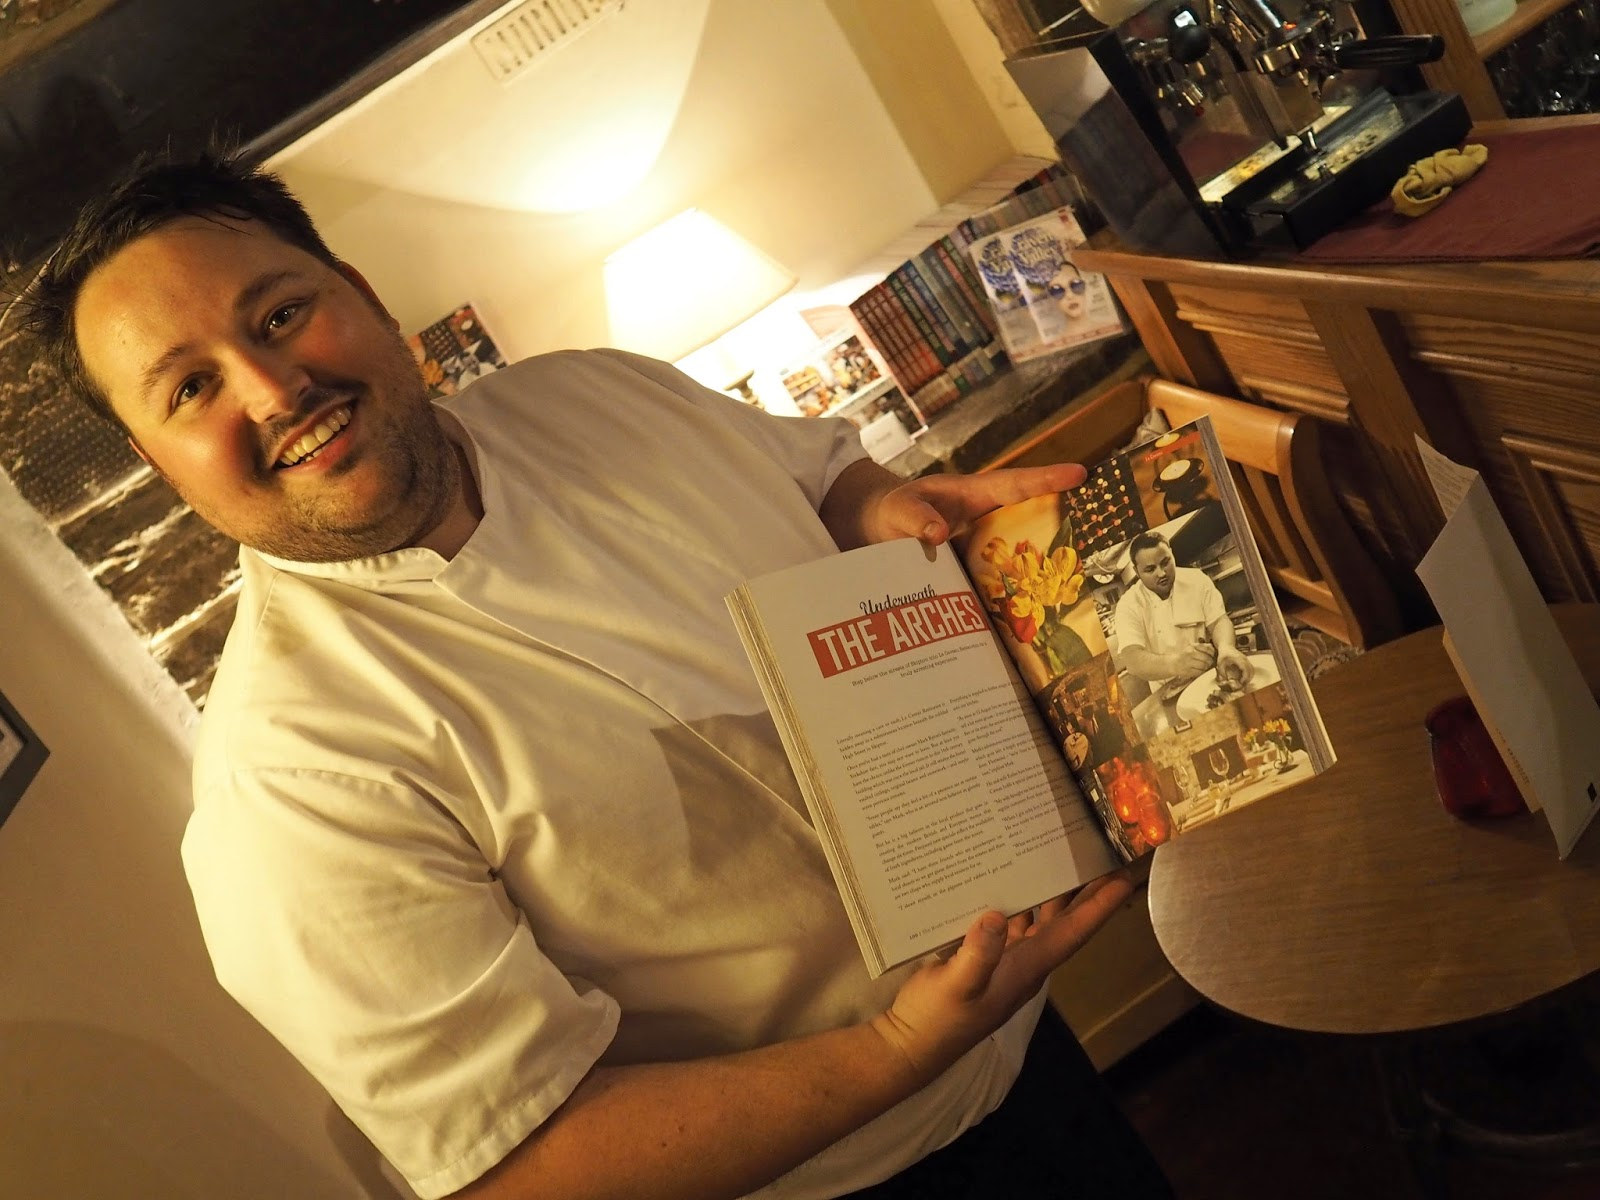 Mark Byron, owner and head chef at Le Caveau, excellent French restaurant in Skipton, North Yorkshire